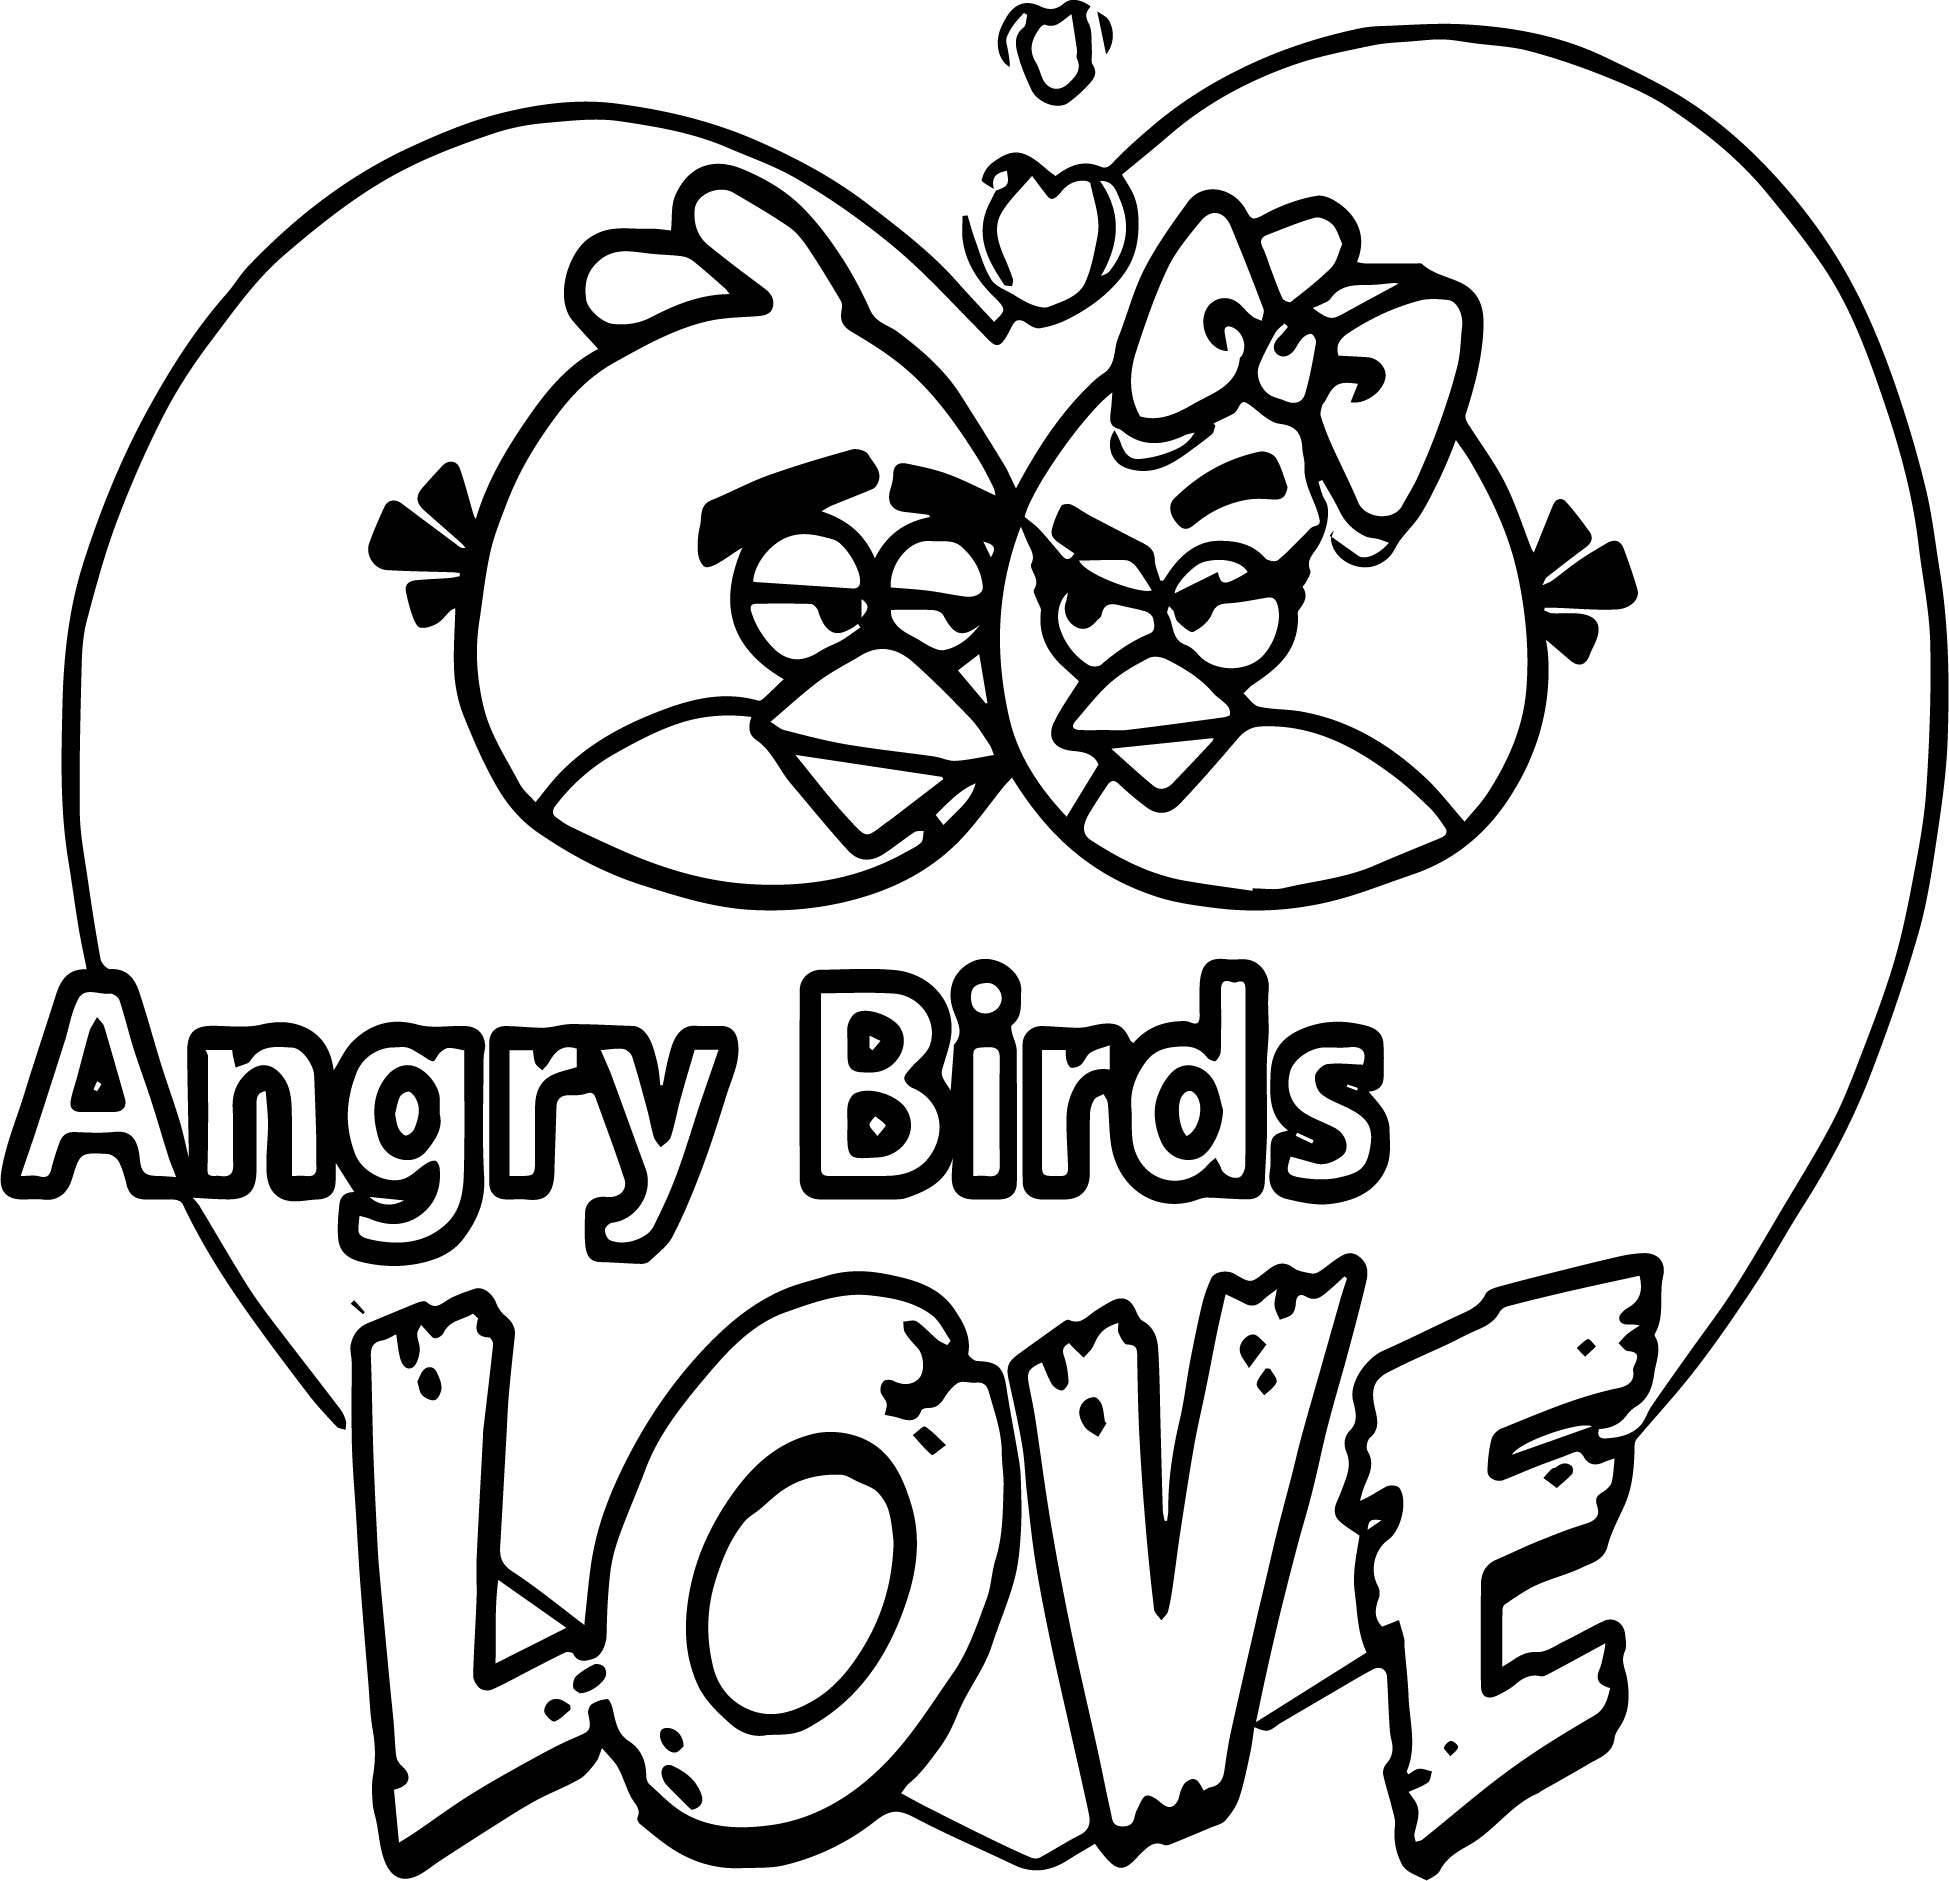 Angry Birds Love Coloring Page